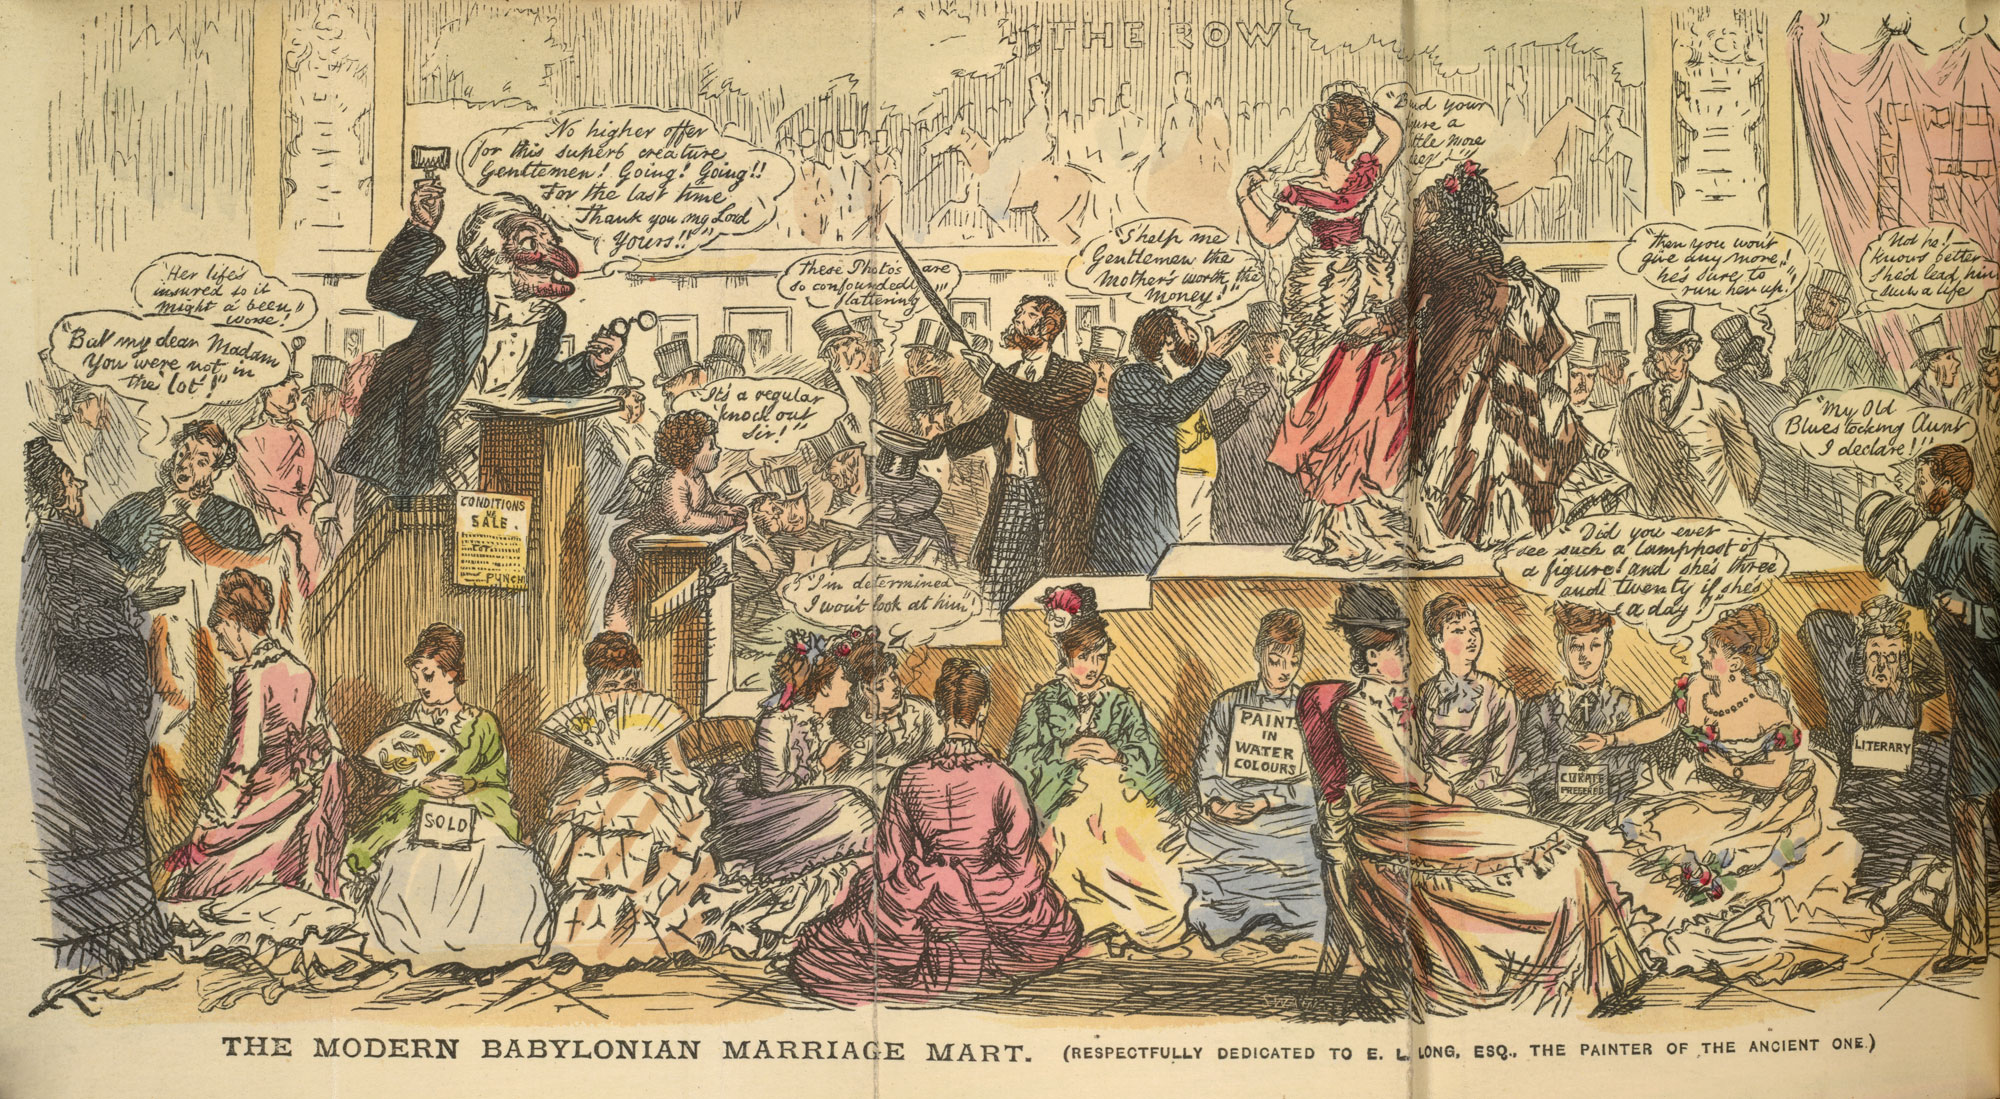 The Modern Babylonian Marriage Mart' from Punch's Pocket-Book [page: frontispiece]